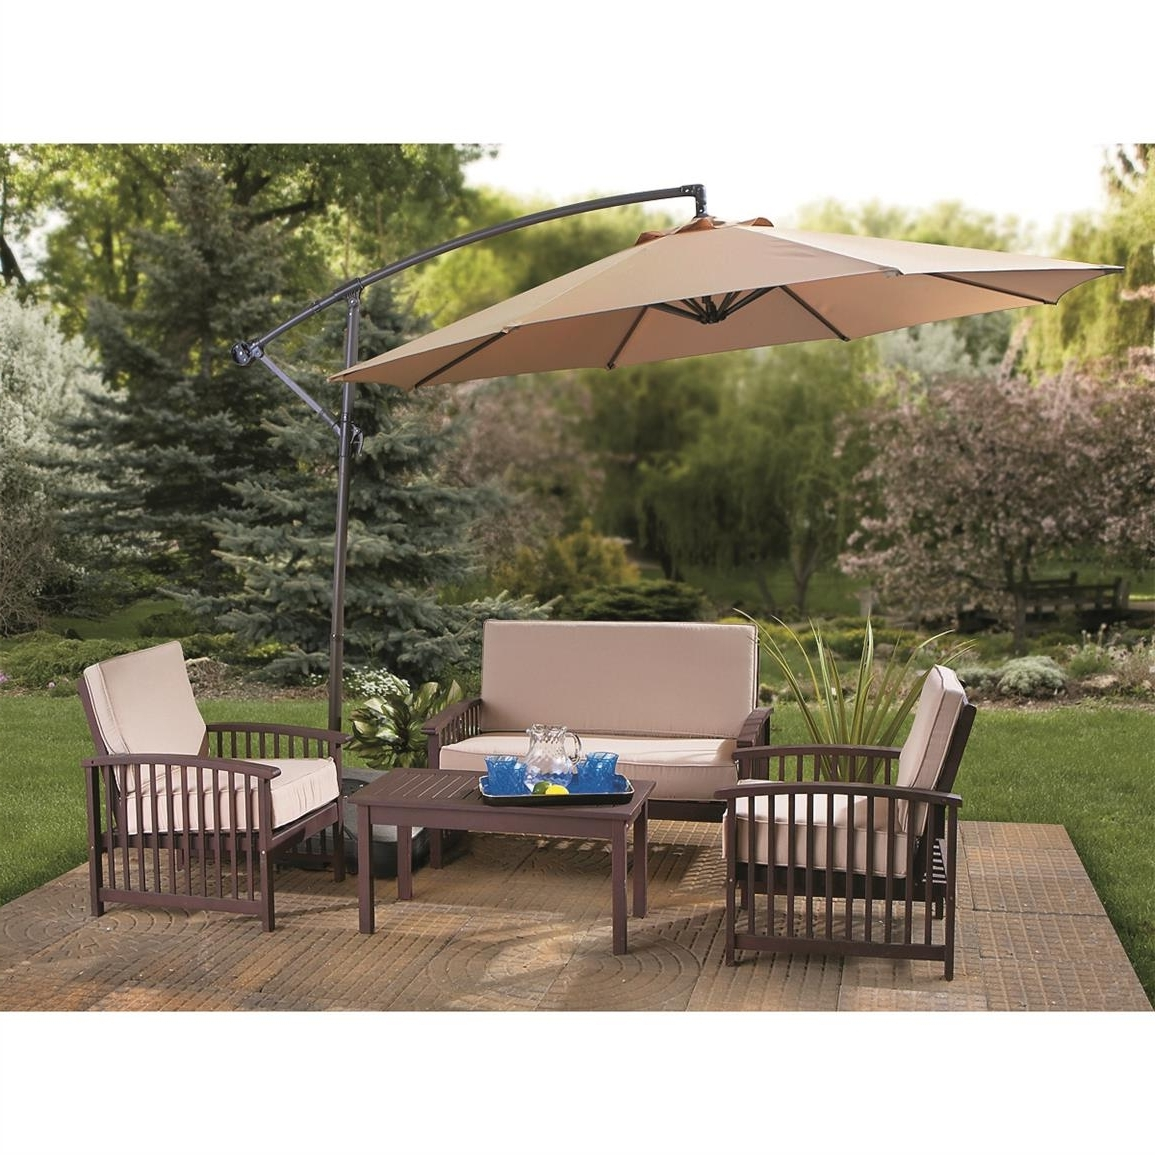 Recent Castlecreek 10' Cantilever Patio Umbrella – 234178, Patio Umbrellas With Regard To Expensive Patio Umbrellas (View 12 of 20)